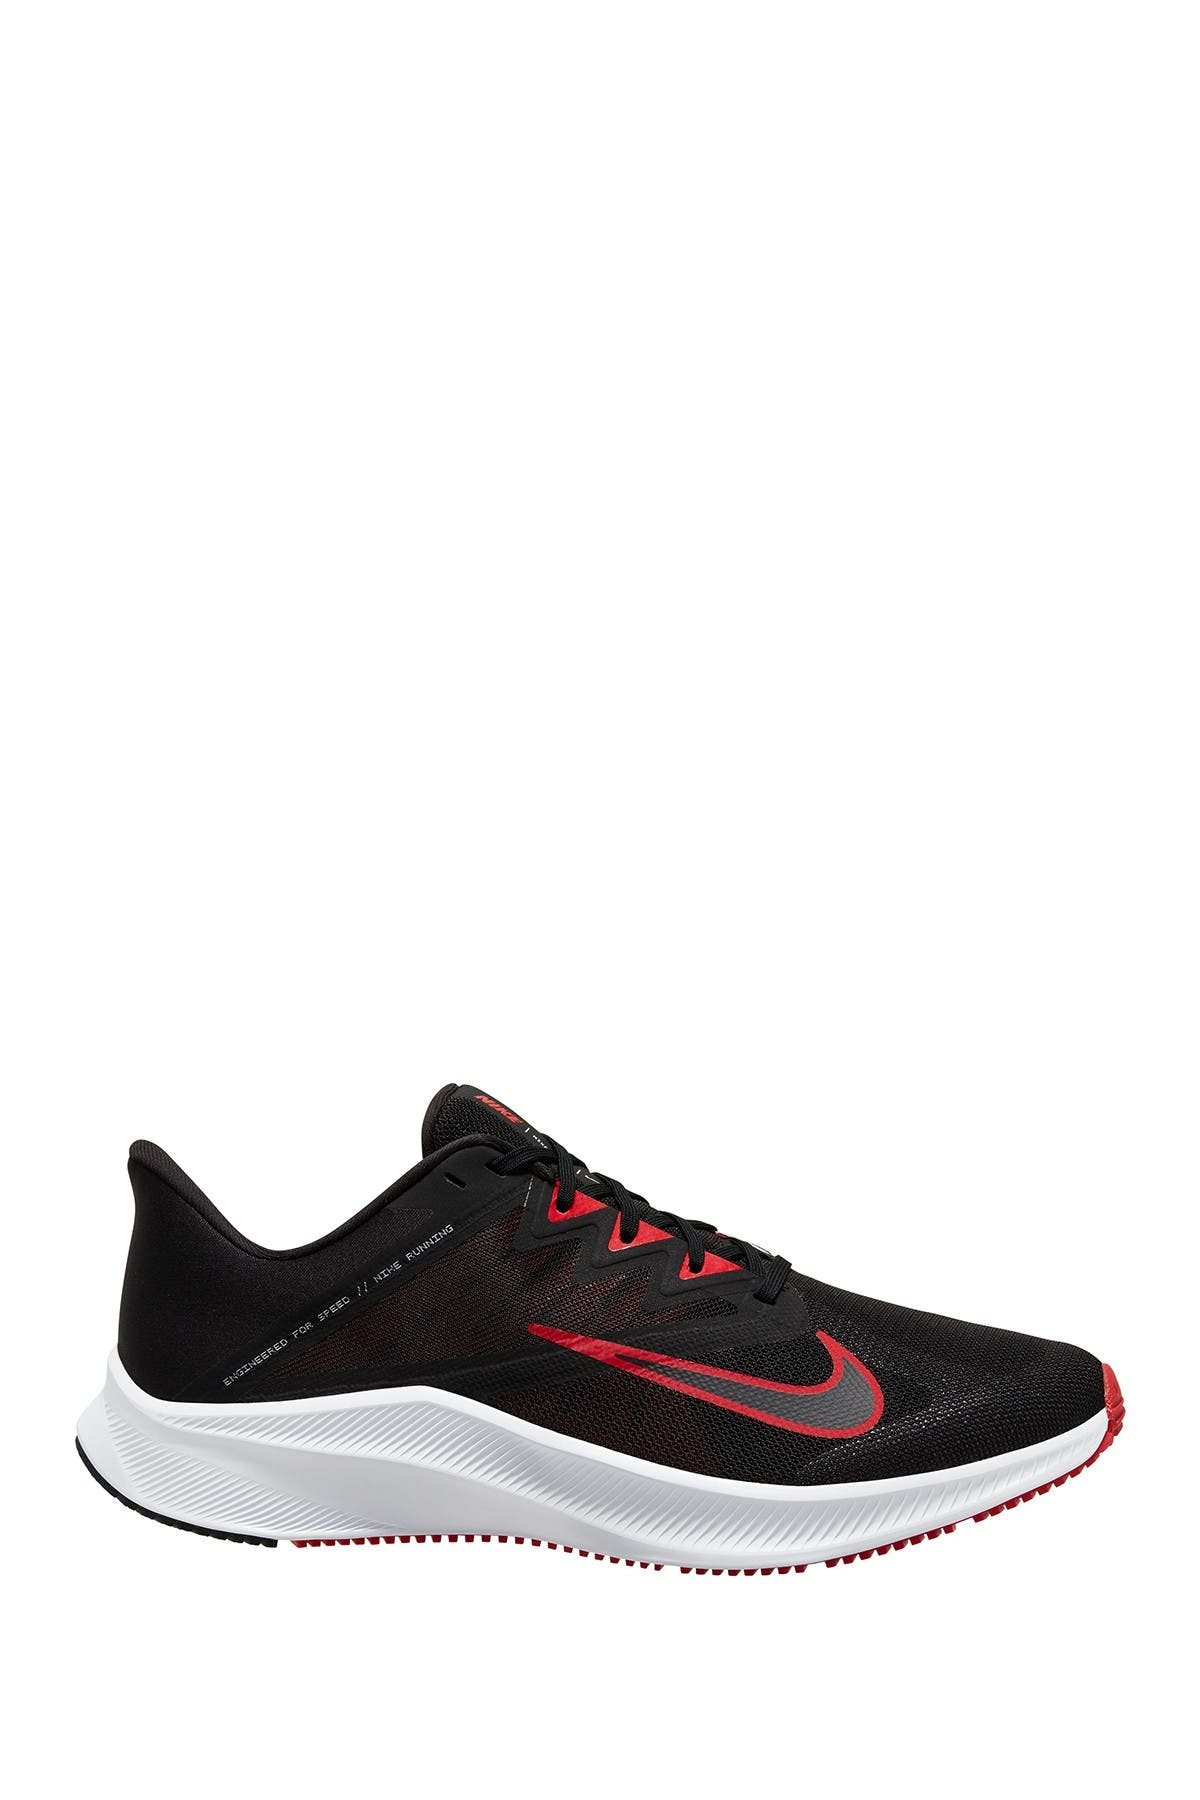 Image of Nike Quest 3 Running Shoe